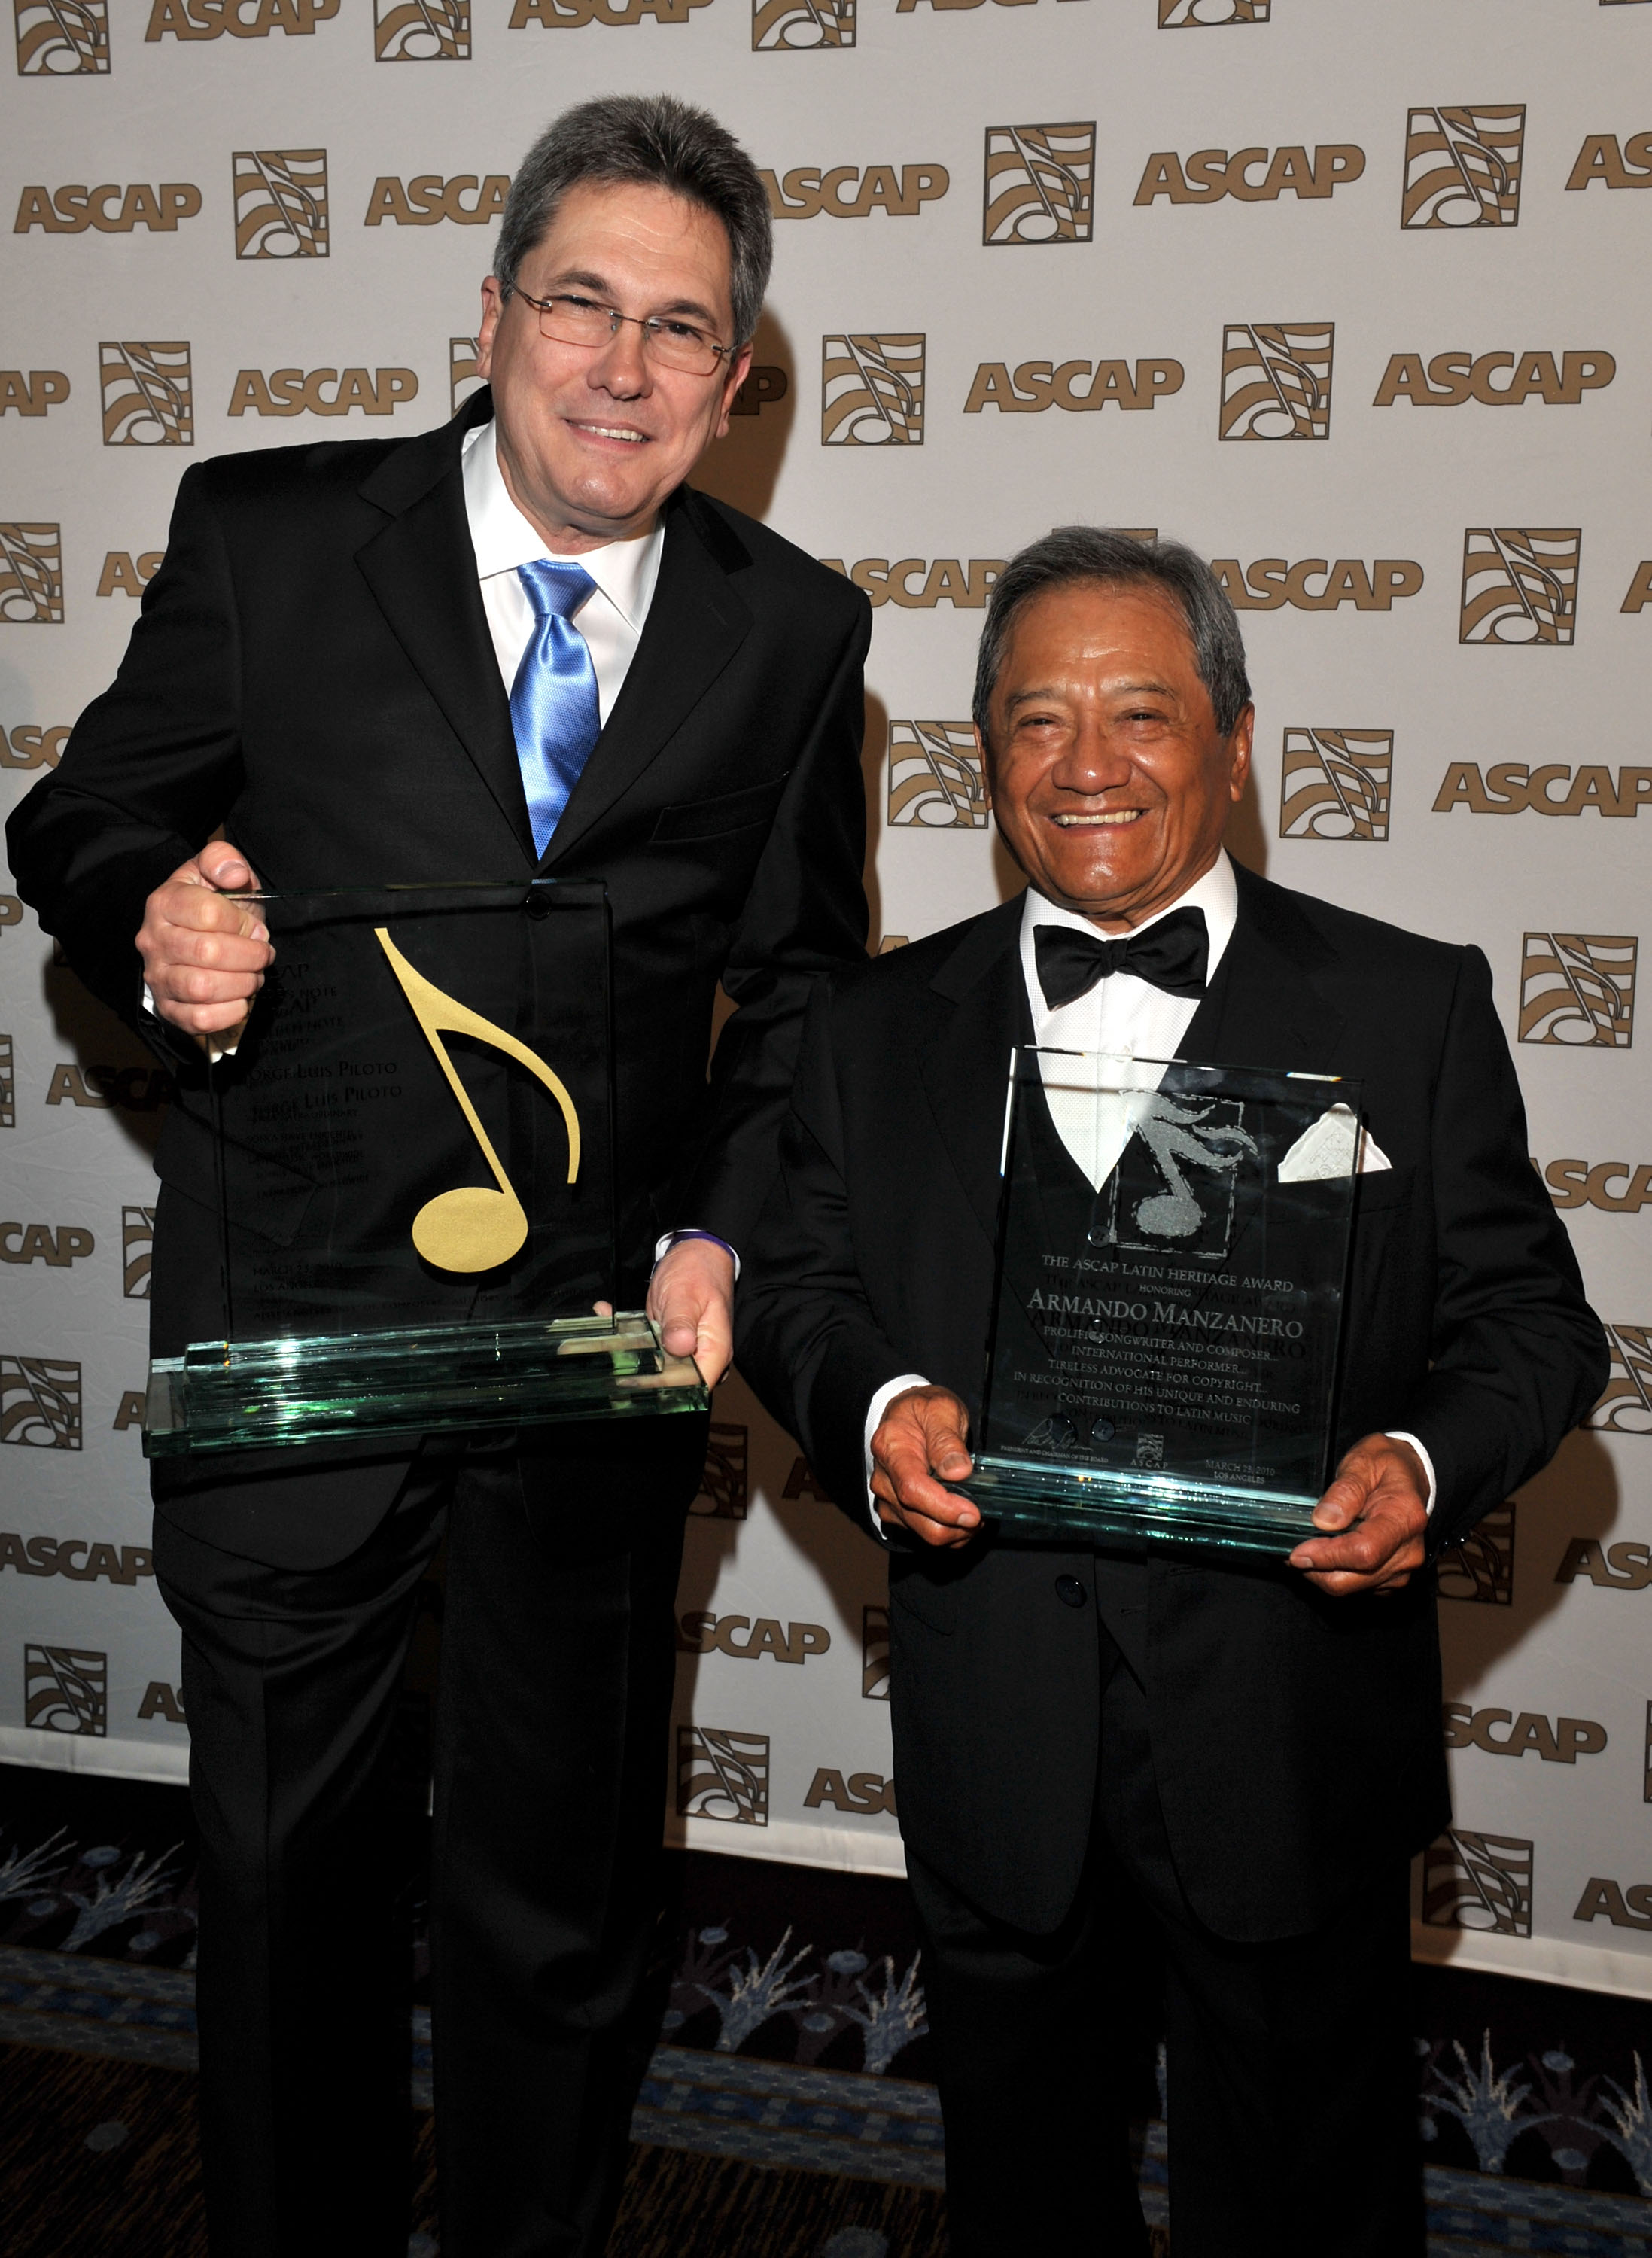 ascap-awards-2010-004.jpg